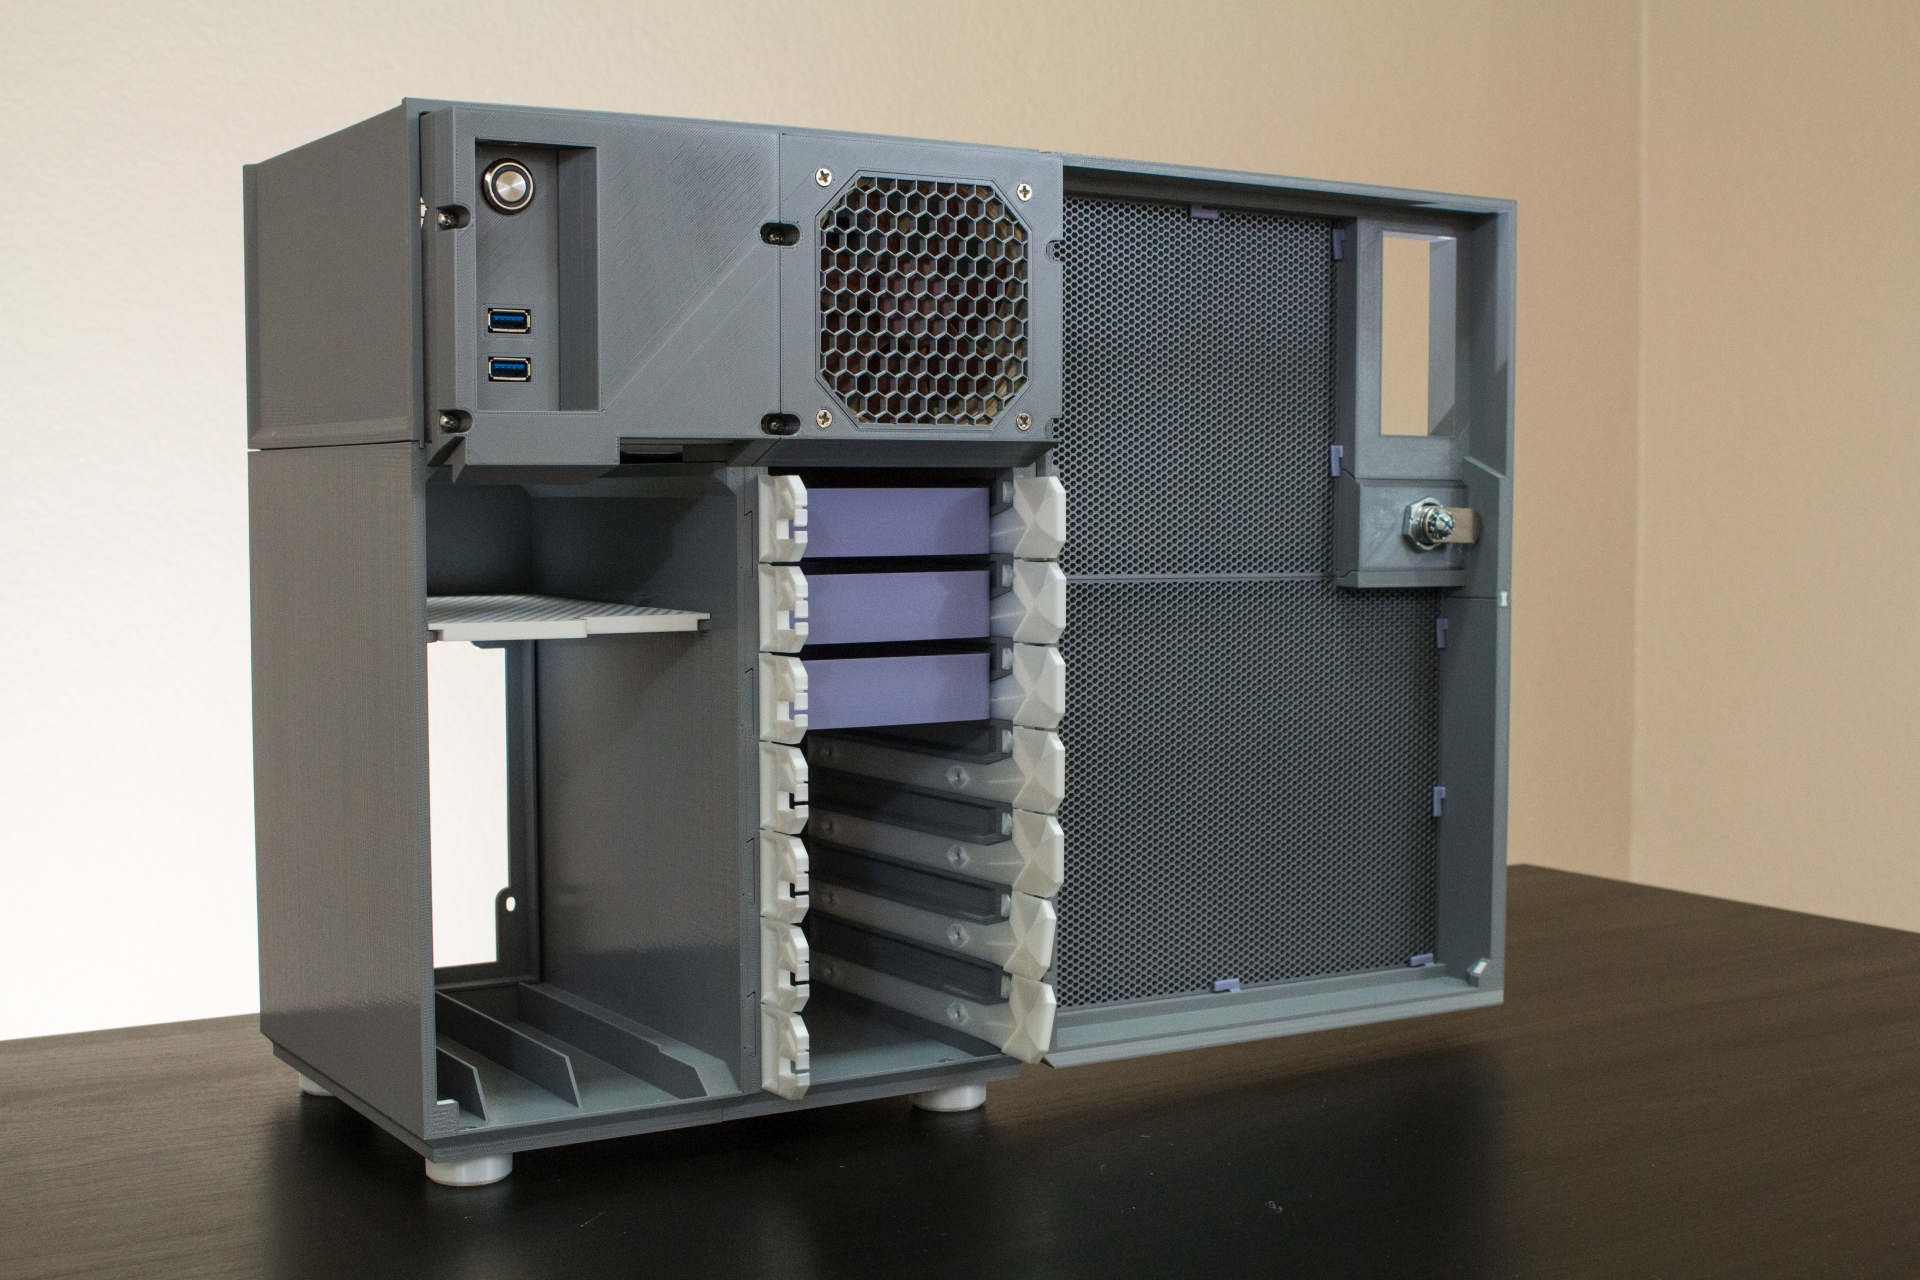 What About a 3D-Printed Mini-ITX NAS Case?